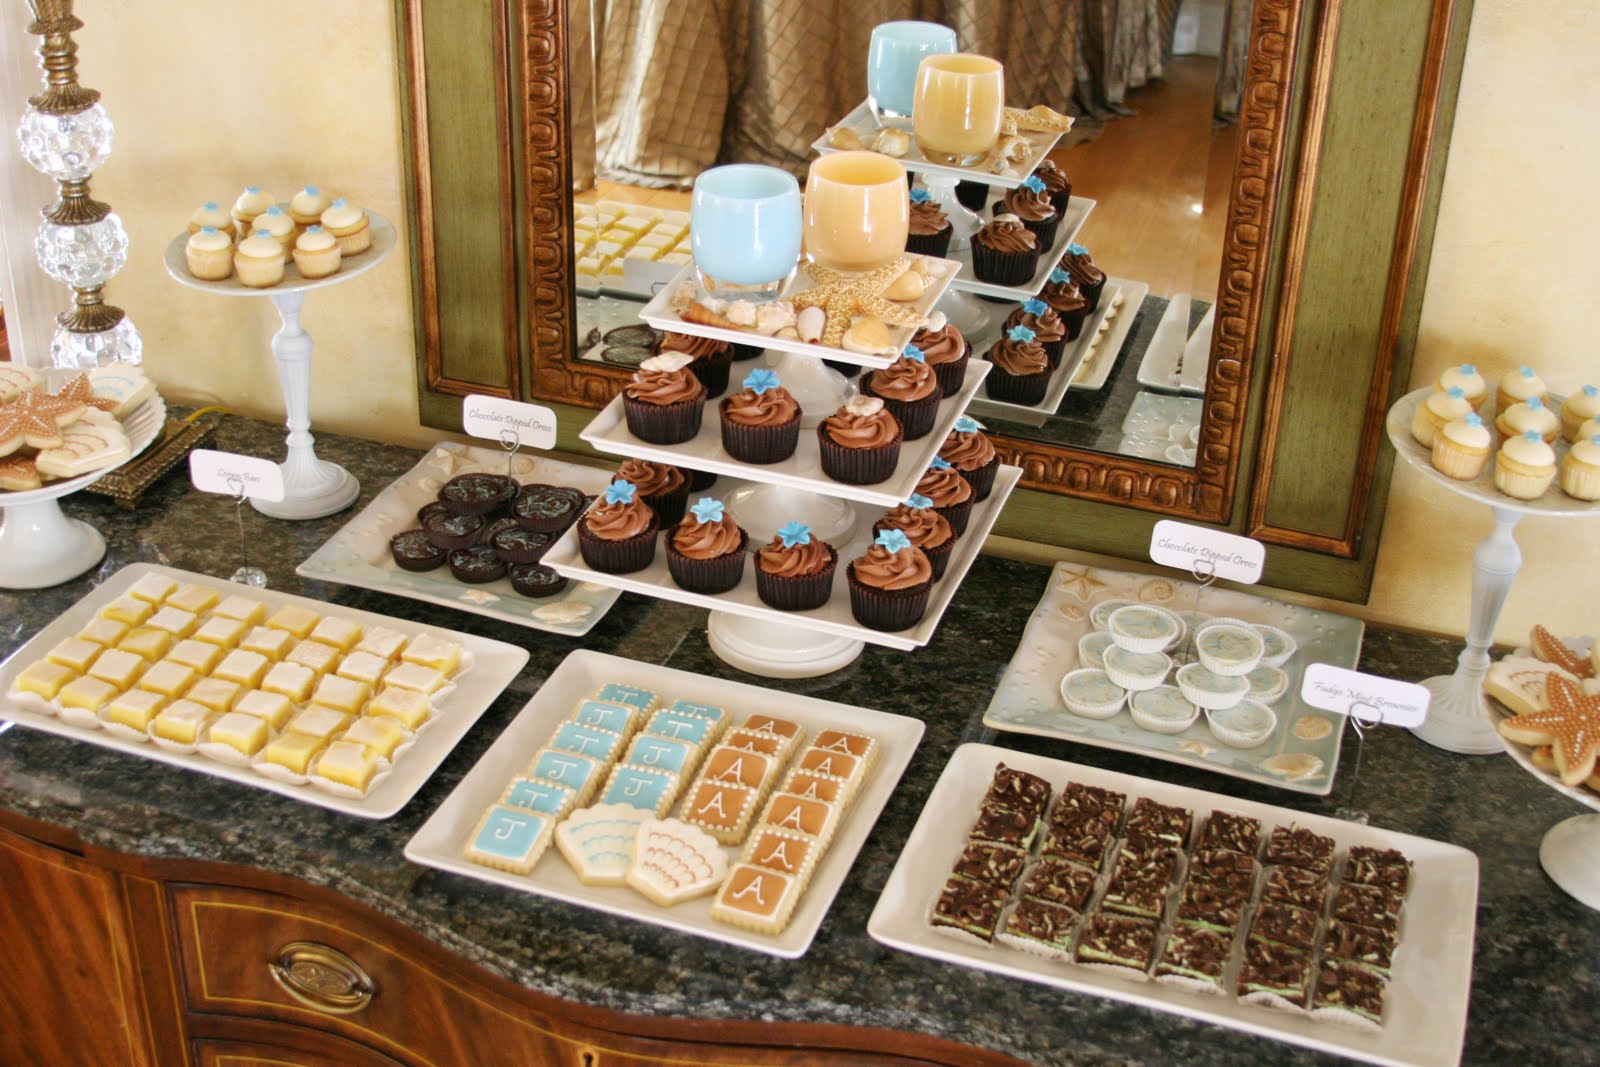 beach wedding cake and dessert table glorious treats. Black Bedroom Furniture Sets. Home Design Ideas